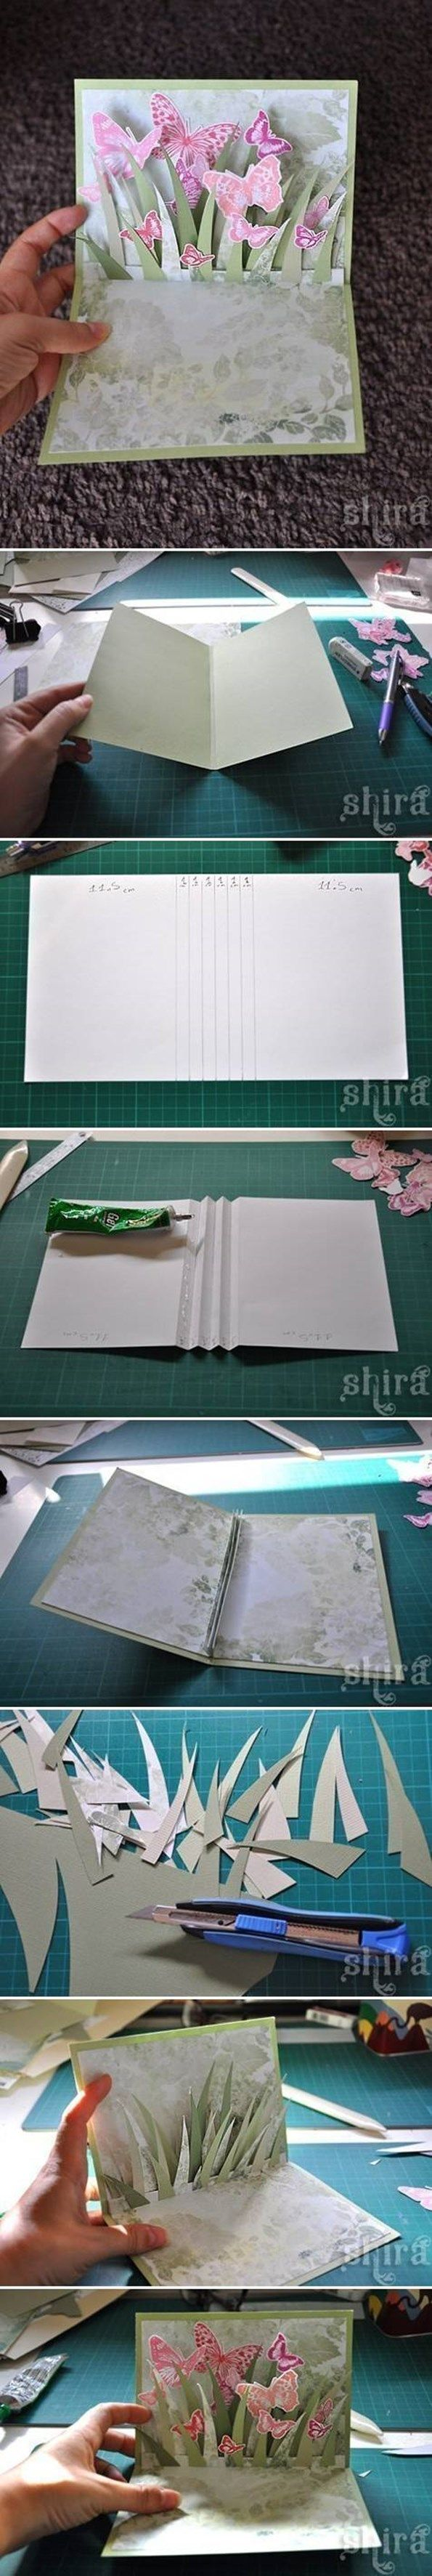 How to Hand Made 3D Greeting Card Step by Step | Handmade ...